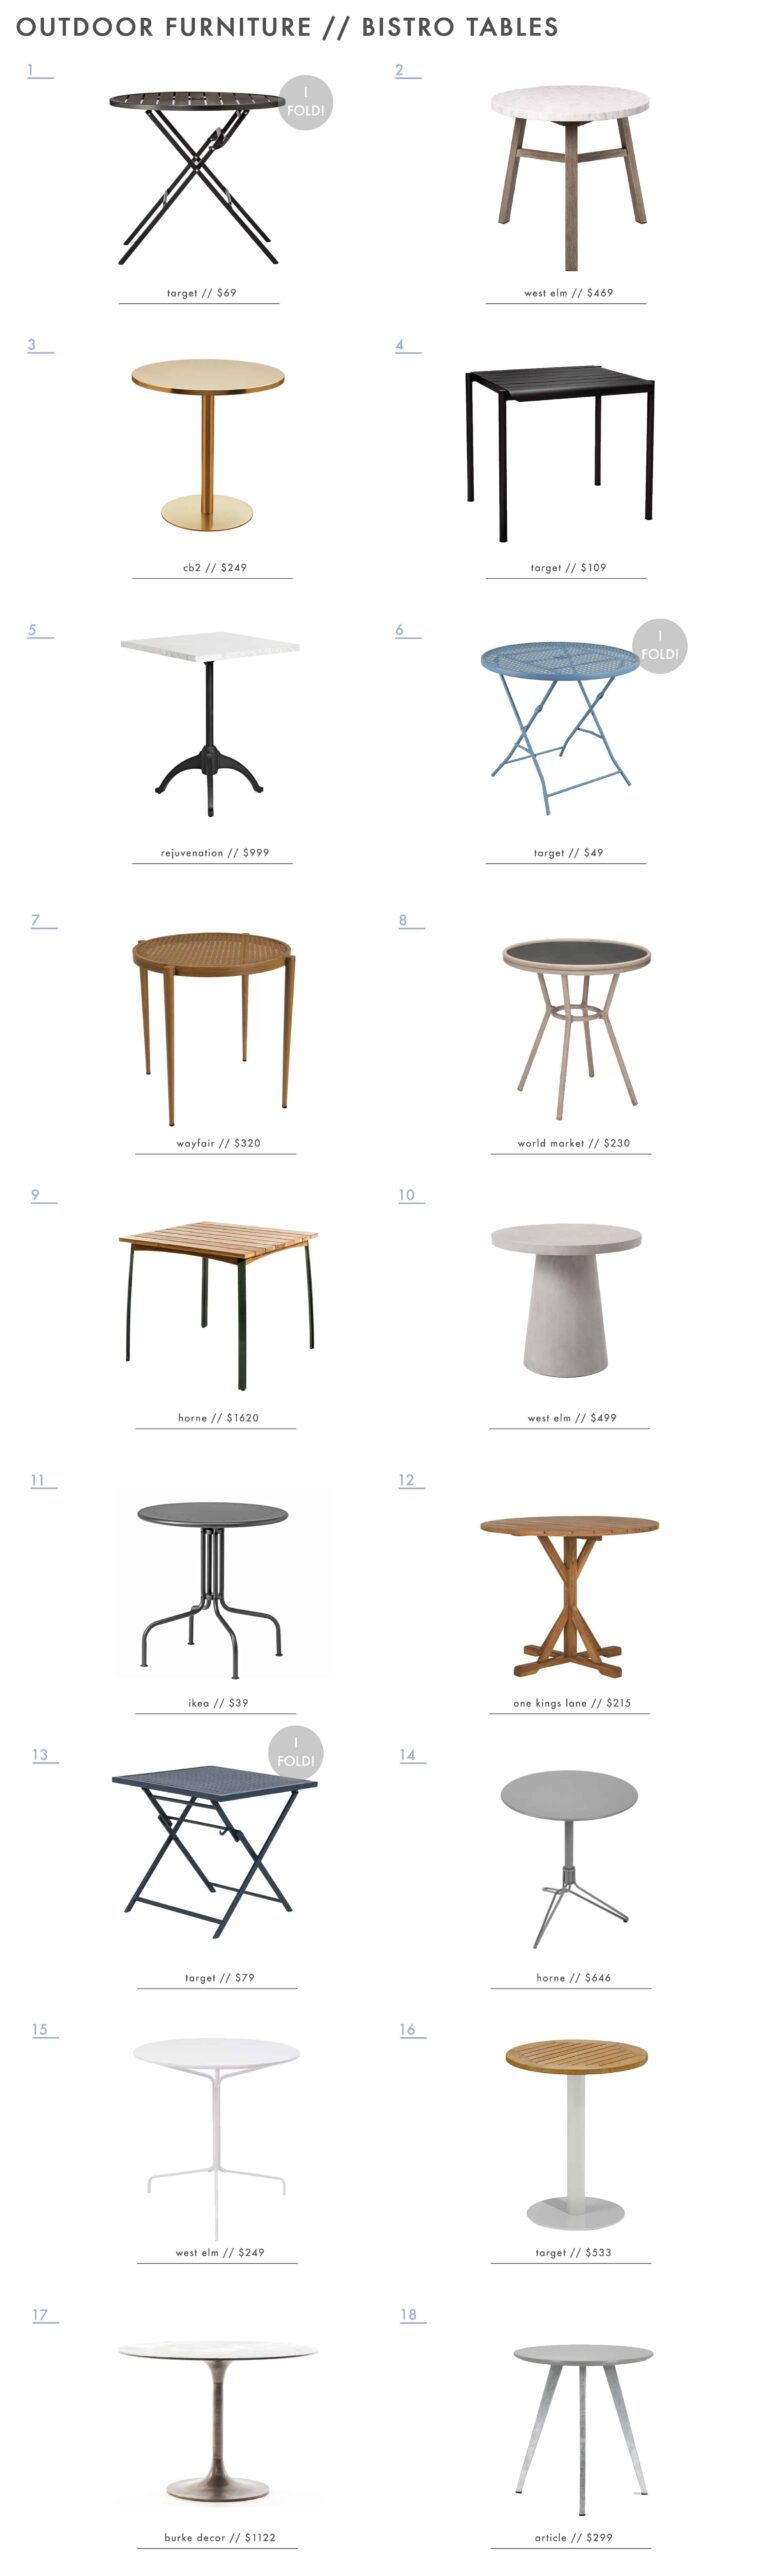 Emily Henderson Outdoor Furniture Dining Tables Bistro Roundup